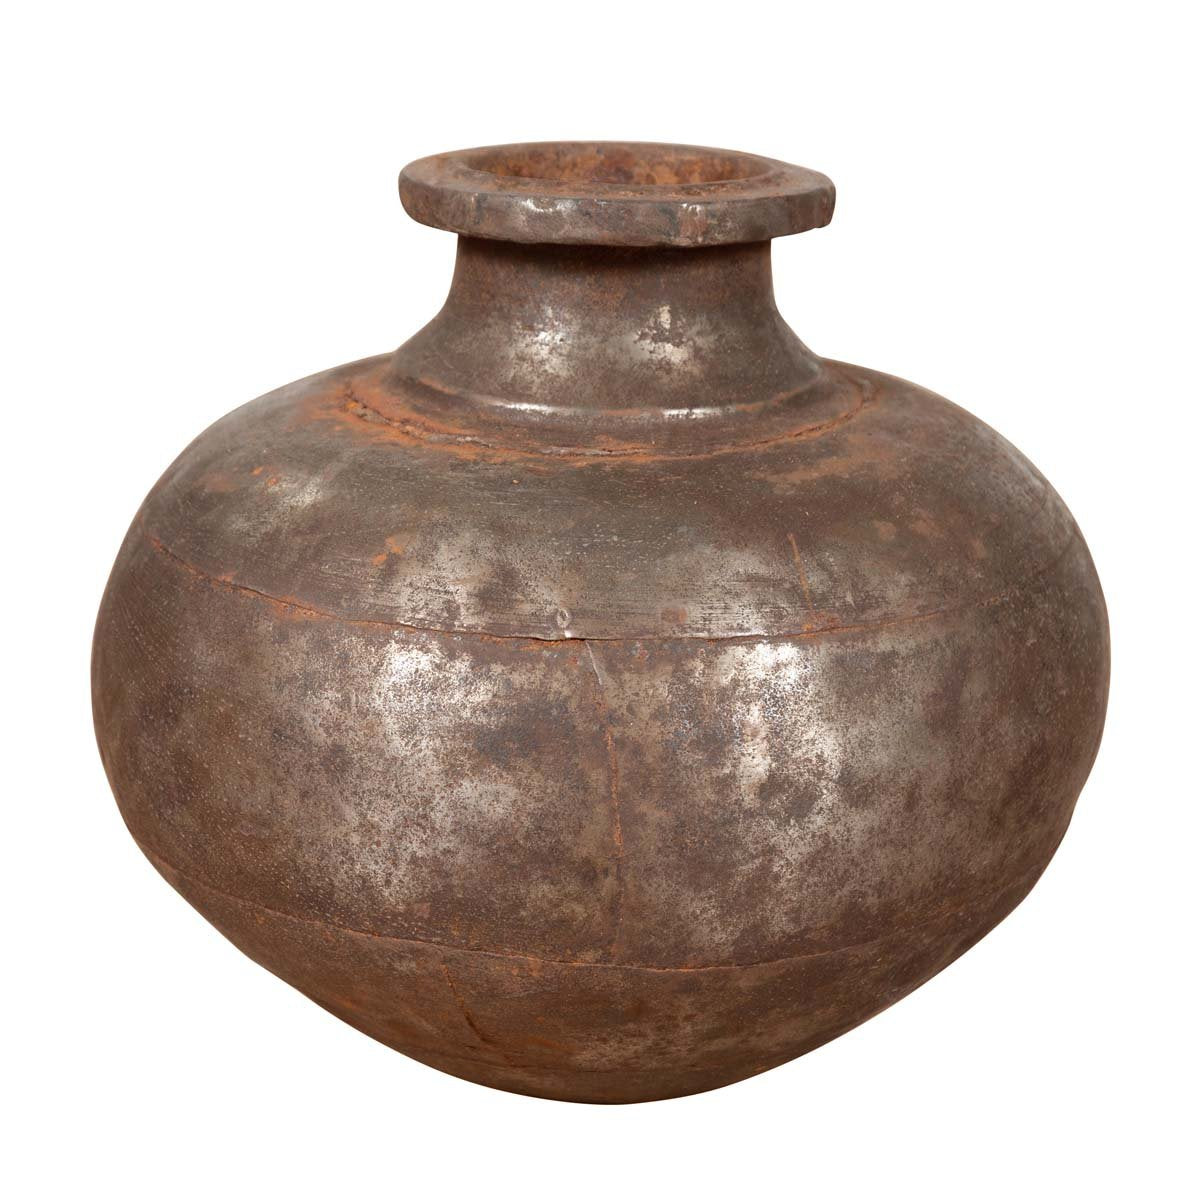 Indian 19th Century Metal Water Jug with Generous Belly and Protruding Lip